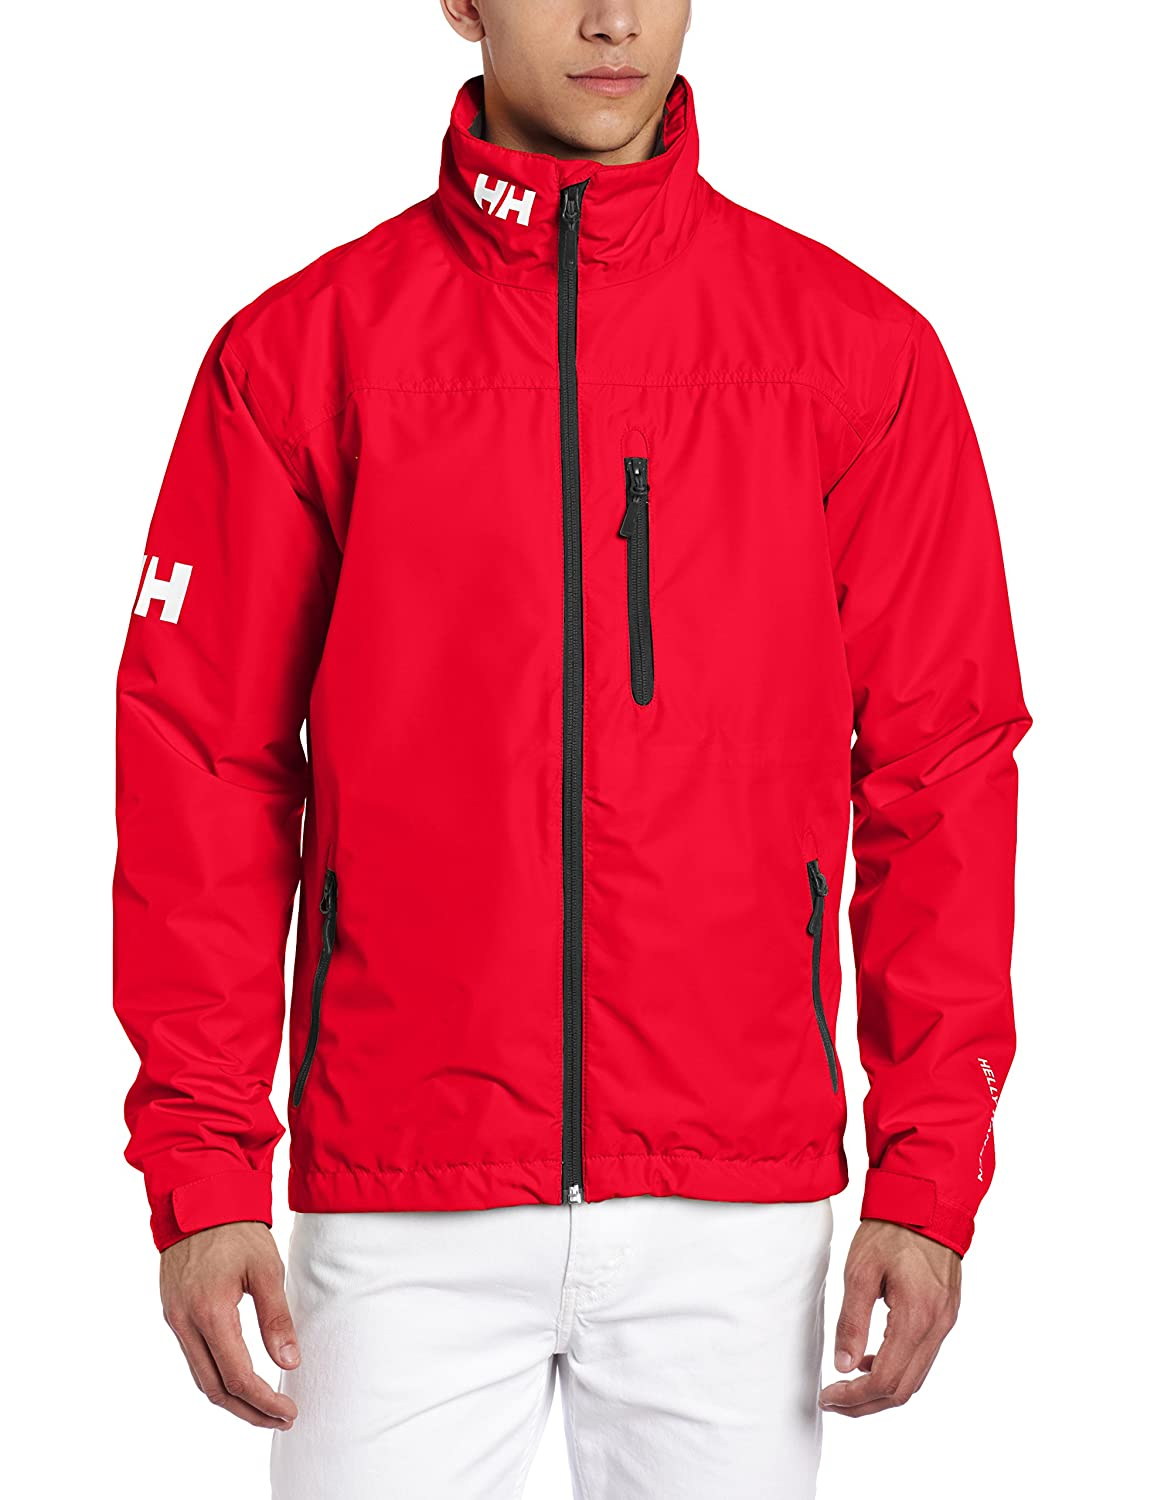 Helly Hansen Crew Midlayer Jacket, Chaqueta Impermeable para Hombre, Color Rojo (Red), Talla XL: Amazon.es: Deportes y aire libre